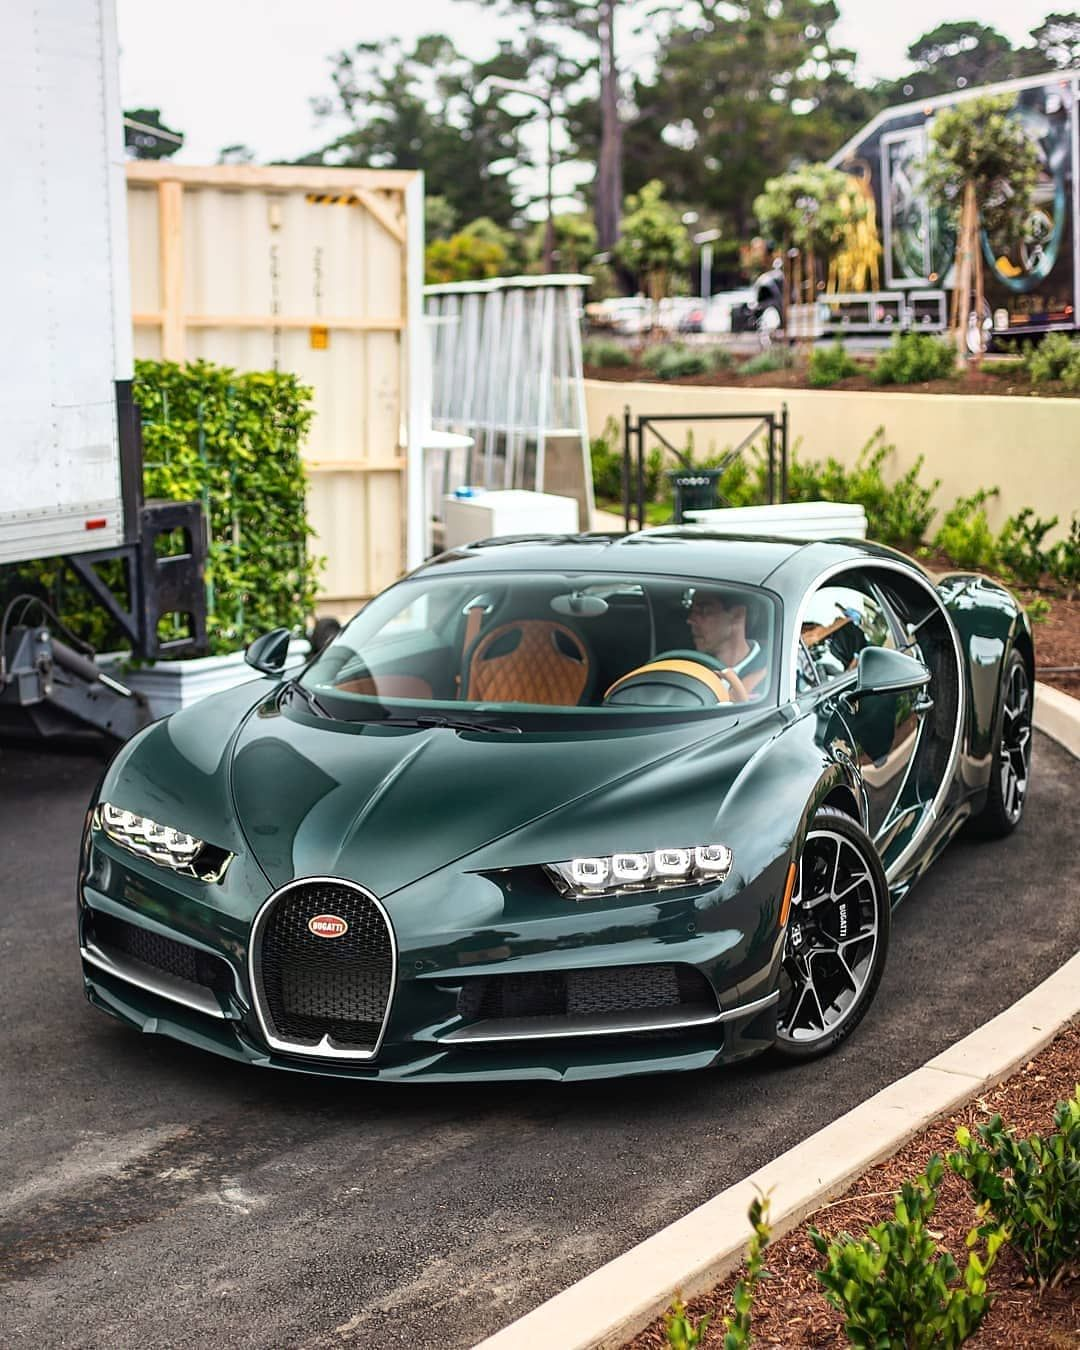 Bugatti Sport: Green Carbon Chiron. ♻️ How Do You Like This Spec ? 💸